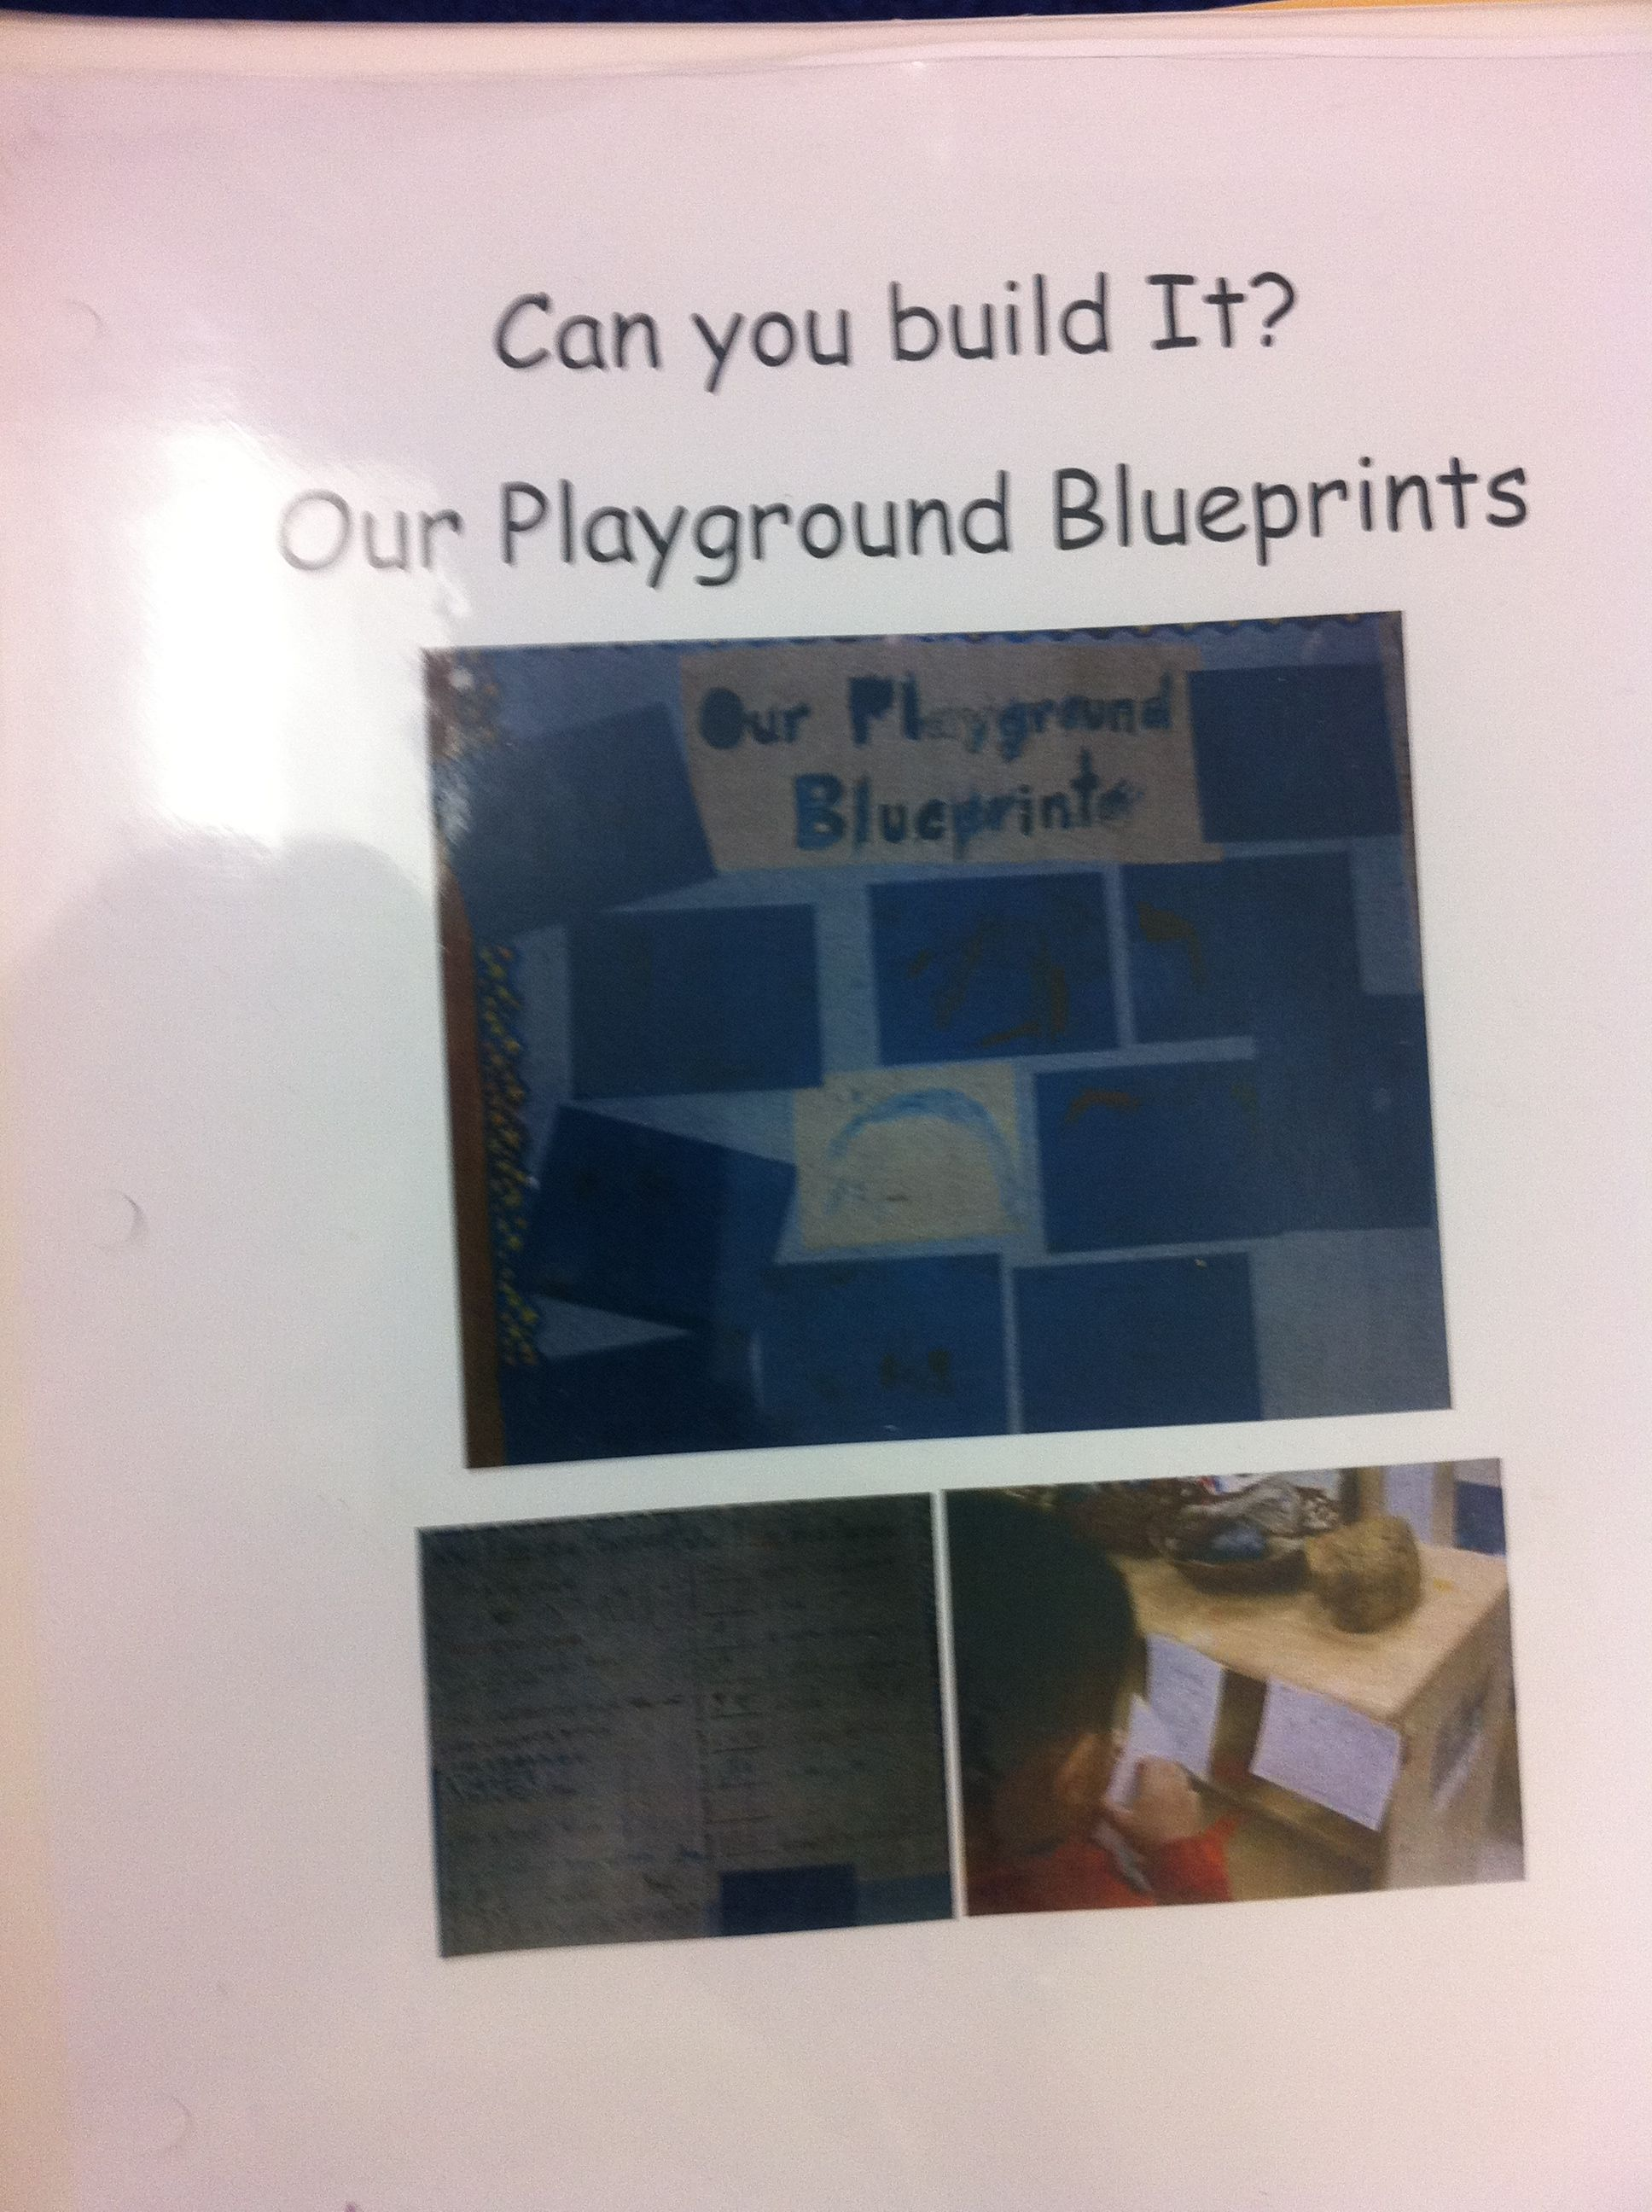 Can you build it playground blueprint book cover from shena petties playground blueprint book cover from shena petties malvernweather